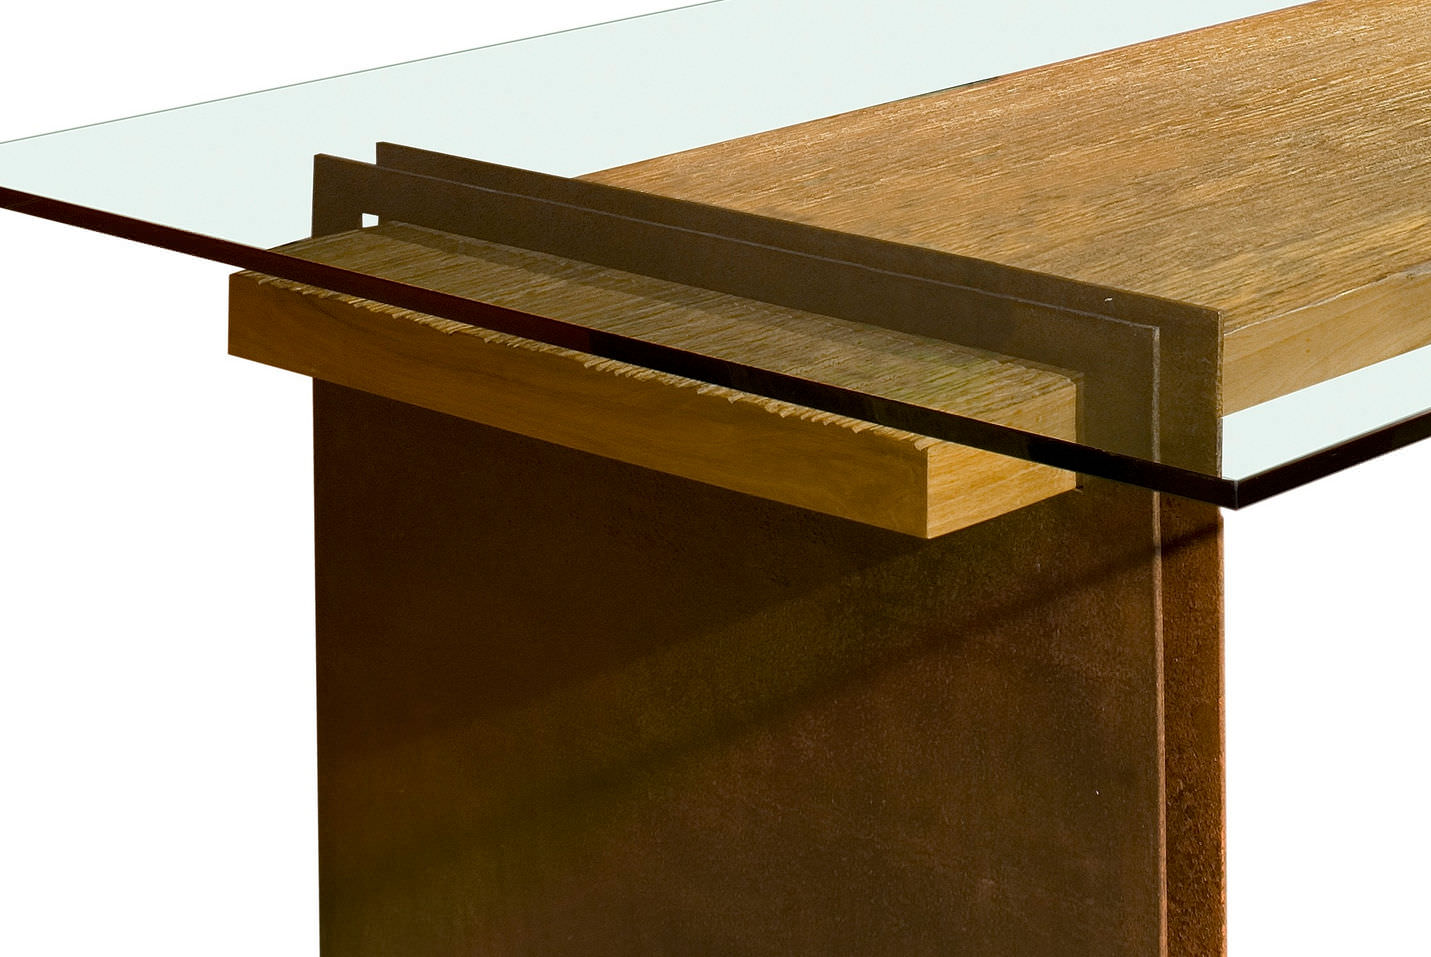 ... Contemporary Table / Wooden / Rectangular / In Reclaimed Material